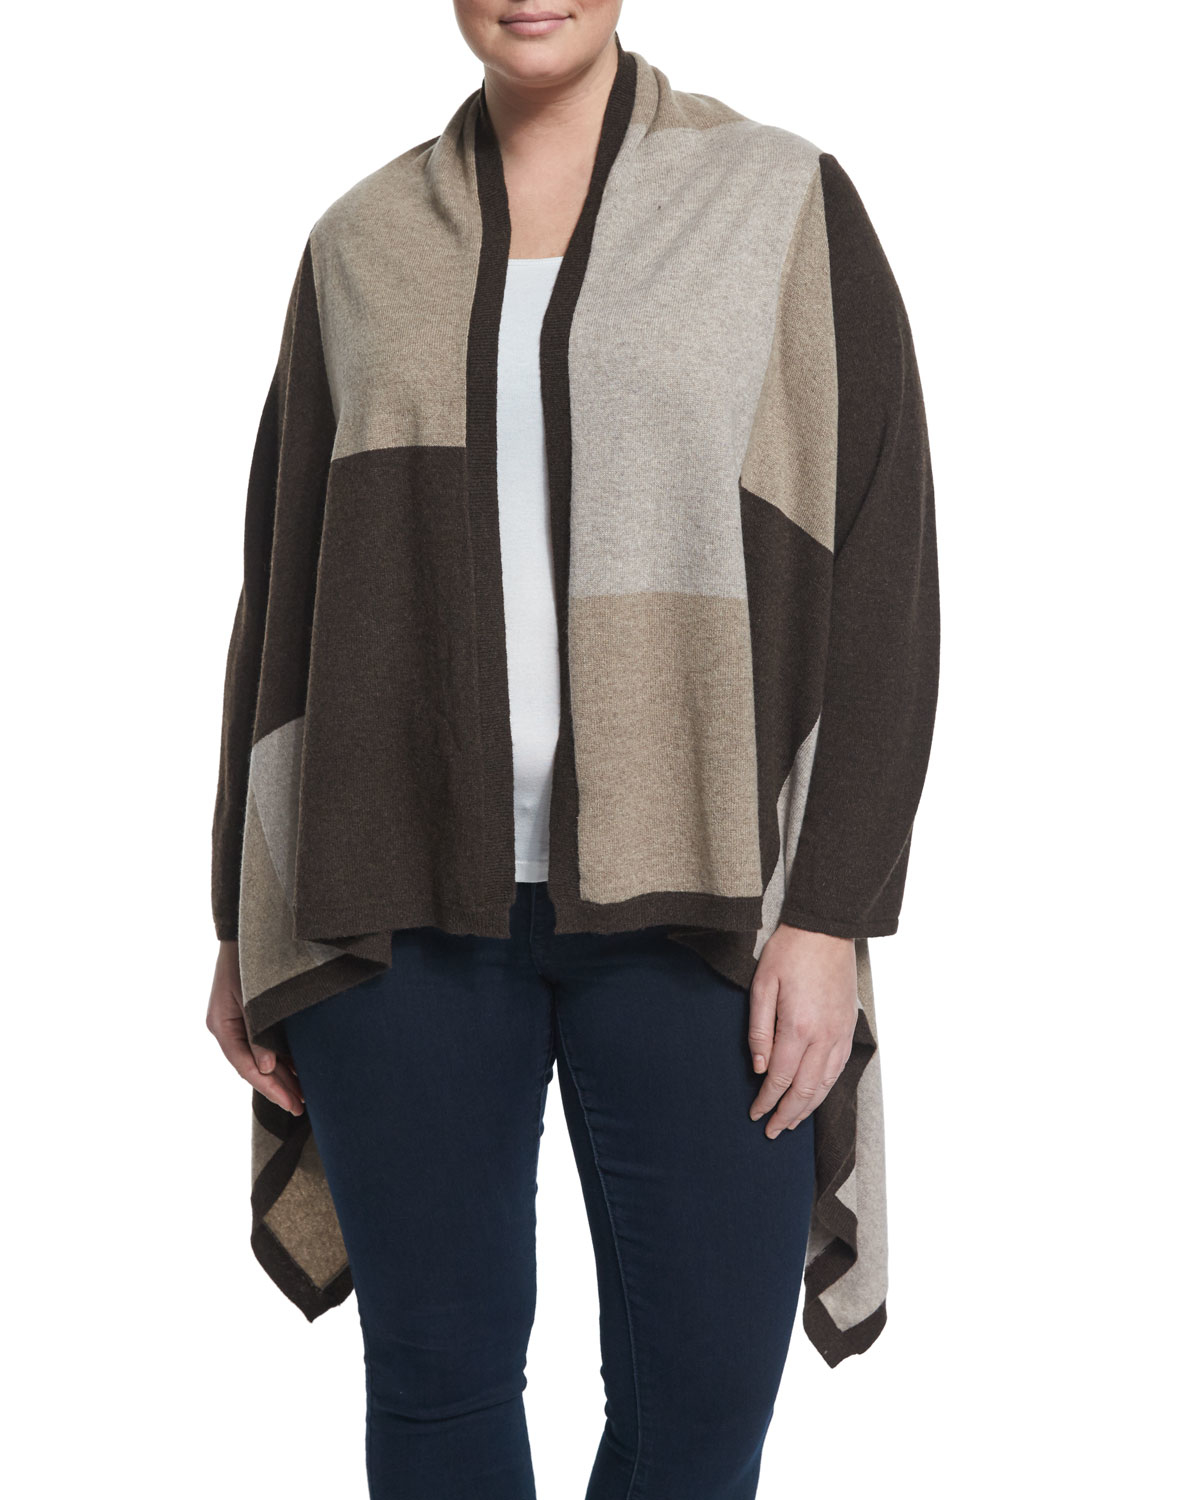 Neiman marcus Cashmere Cascade Colorblock Cardigan in Brown | Lyst